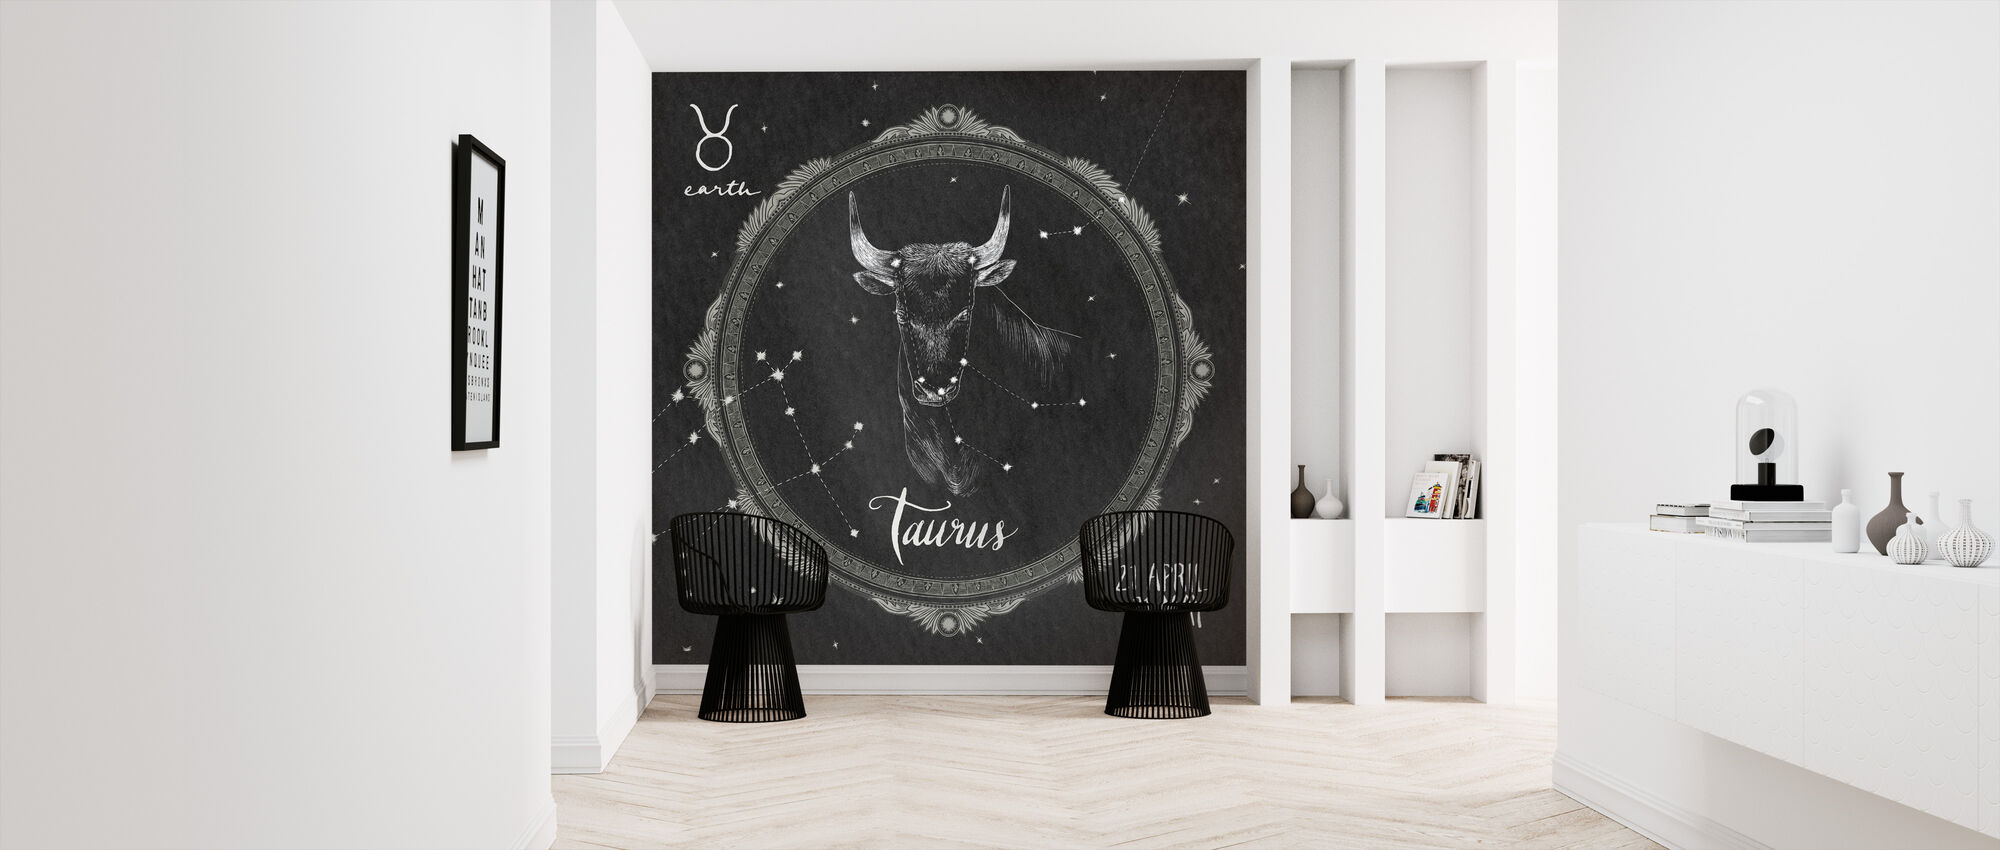 Night Sky Taurus - Wallpaper - Hallway